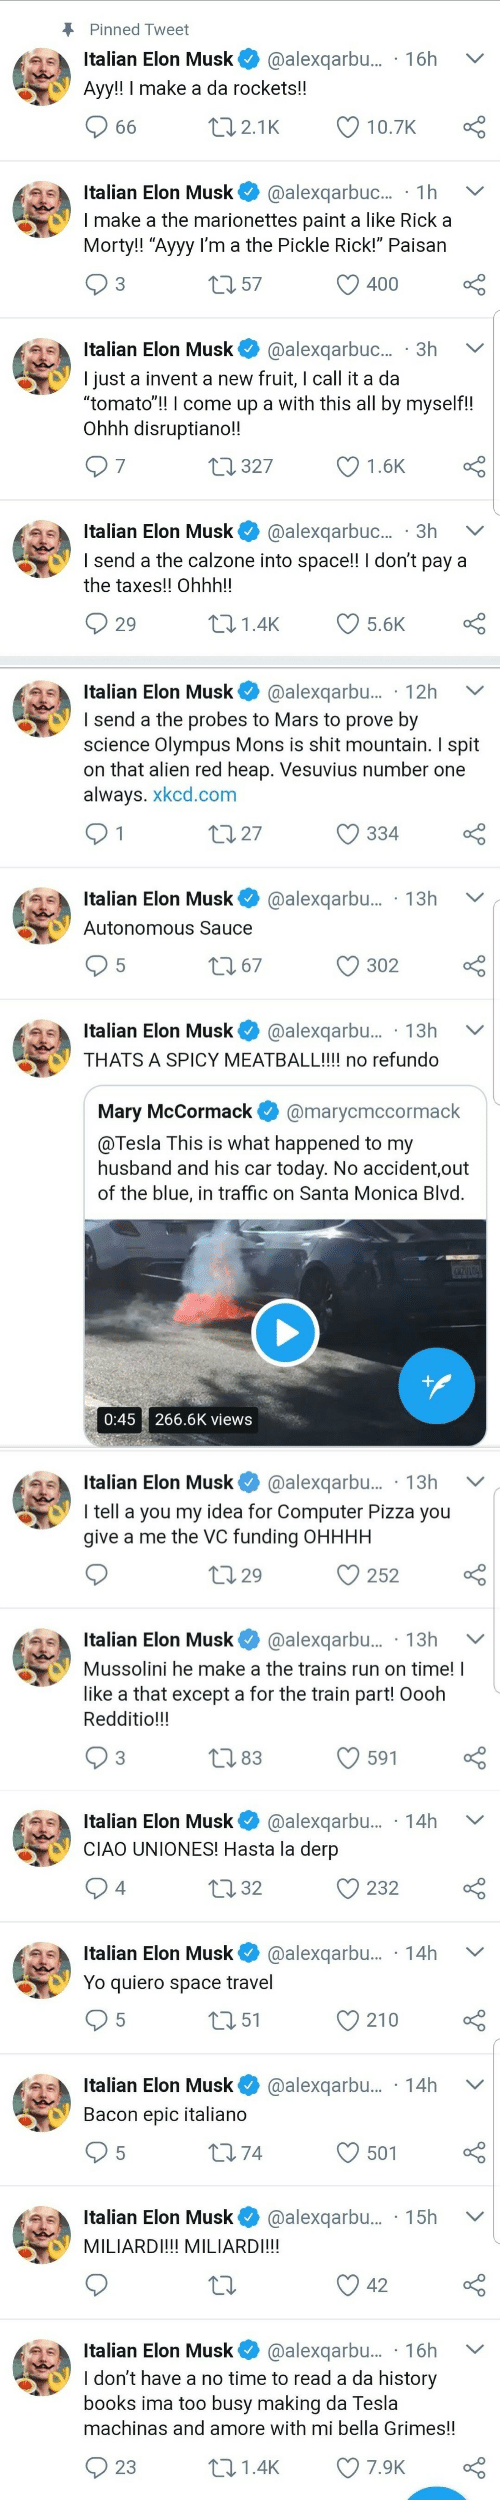 """mussolini: Pinned Tweet  Italian Elon Musk @alexqarbu... 16h V  Ayy!! I make a da rockets!!  Italian Elon Musk@alexqarbuc... 1h  I make a the marionettes paint a like Rick a  Morty!! """"Ayyy I'm a the Pickle Rick!"""" Paisan  3  0 57  O 400  Italian Elon Musk@alexqarbuc... 3h  I just a invent a new fruit, I call it a da  tomato!! l come up a with this all by myself!!  Ohhh disruptiano!!  7  327  1.6K  Italian Elon Musk @alexqarbuc.. 3h V  I send a the calzone into space!! I don't pay a  the taxes!! Ohhh!!  29  01.4K 5.6K   Italian Elon Musk@alexqarbu... 12h  send a the probes to Mars to prove by  science Olympus Mons is shit mountain. I spit  on that alien red heap. Vesuvius number one  always. xkcd.com  t0 27  334  Italian Elon Musk@alexqarbu... 13h V  Autonomous Sauce  302  Italian Elon Musk* @alexqarbu.. . 13h  THATS A SPICY MEATBALL!!!! no refundo  Mary McCormack@marycmccormack  @Tesla This is what happened to my  husband and his car today. No accident,out  of the blue, in traffic on Santa Monica Blvd  0:45 266.6K views   Italian Elon Musk@alexqarbu... . 13h  I tell a you my idea for Computer Pizza you  give a me the VC funding OHHHH  0 29  С 252  Italian Elon Musk @alexqarbu... . 13h V  Mussolini he make a the trains run on time! I  like a that except a for the train part! Oooh  Redditio!!!  83  591   Italian Elon Musk@alexqarbu... 14h  CIAO UNIONES! Hasta la derp  4  0 32  232  Italian Elon Musk@alexqarbu... 14h  Yo quiero space travel  5  151  210  Italian Elon Musk@alexqarbu.... 14h  Bacon epic italiano  5  174  501  Italian Elon Musk@alexqarbu.... 15h  MILIARDI!!! MILIARDI!!!  Italian Elon Musk@alexqarbu... 16h V  ldon't have a no time to read a da history  books ima too busy making da lesla  machinas and amore with mi bella Grimes!!  23  t01.4K 7.9K"""